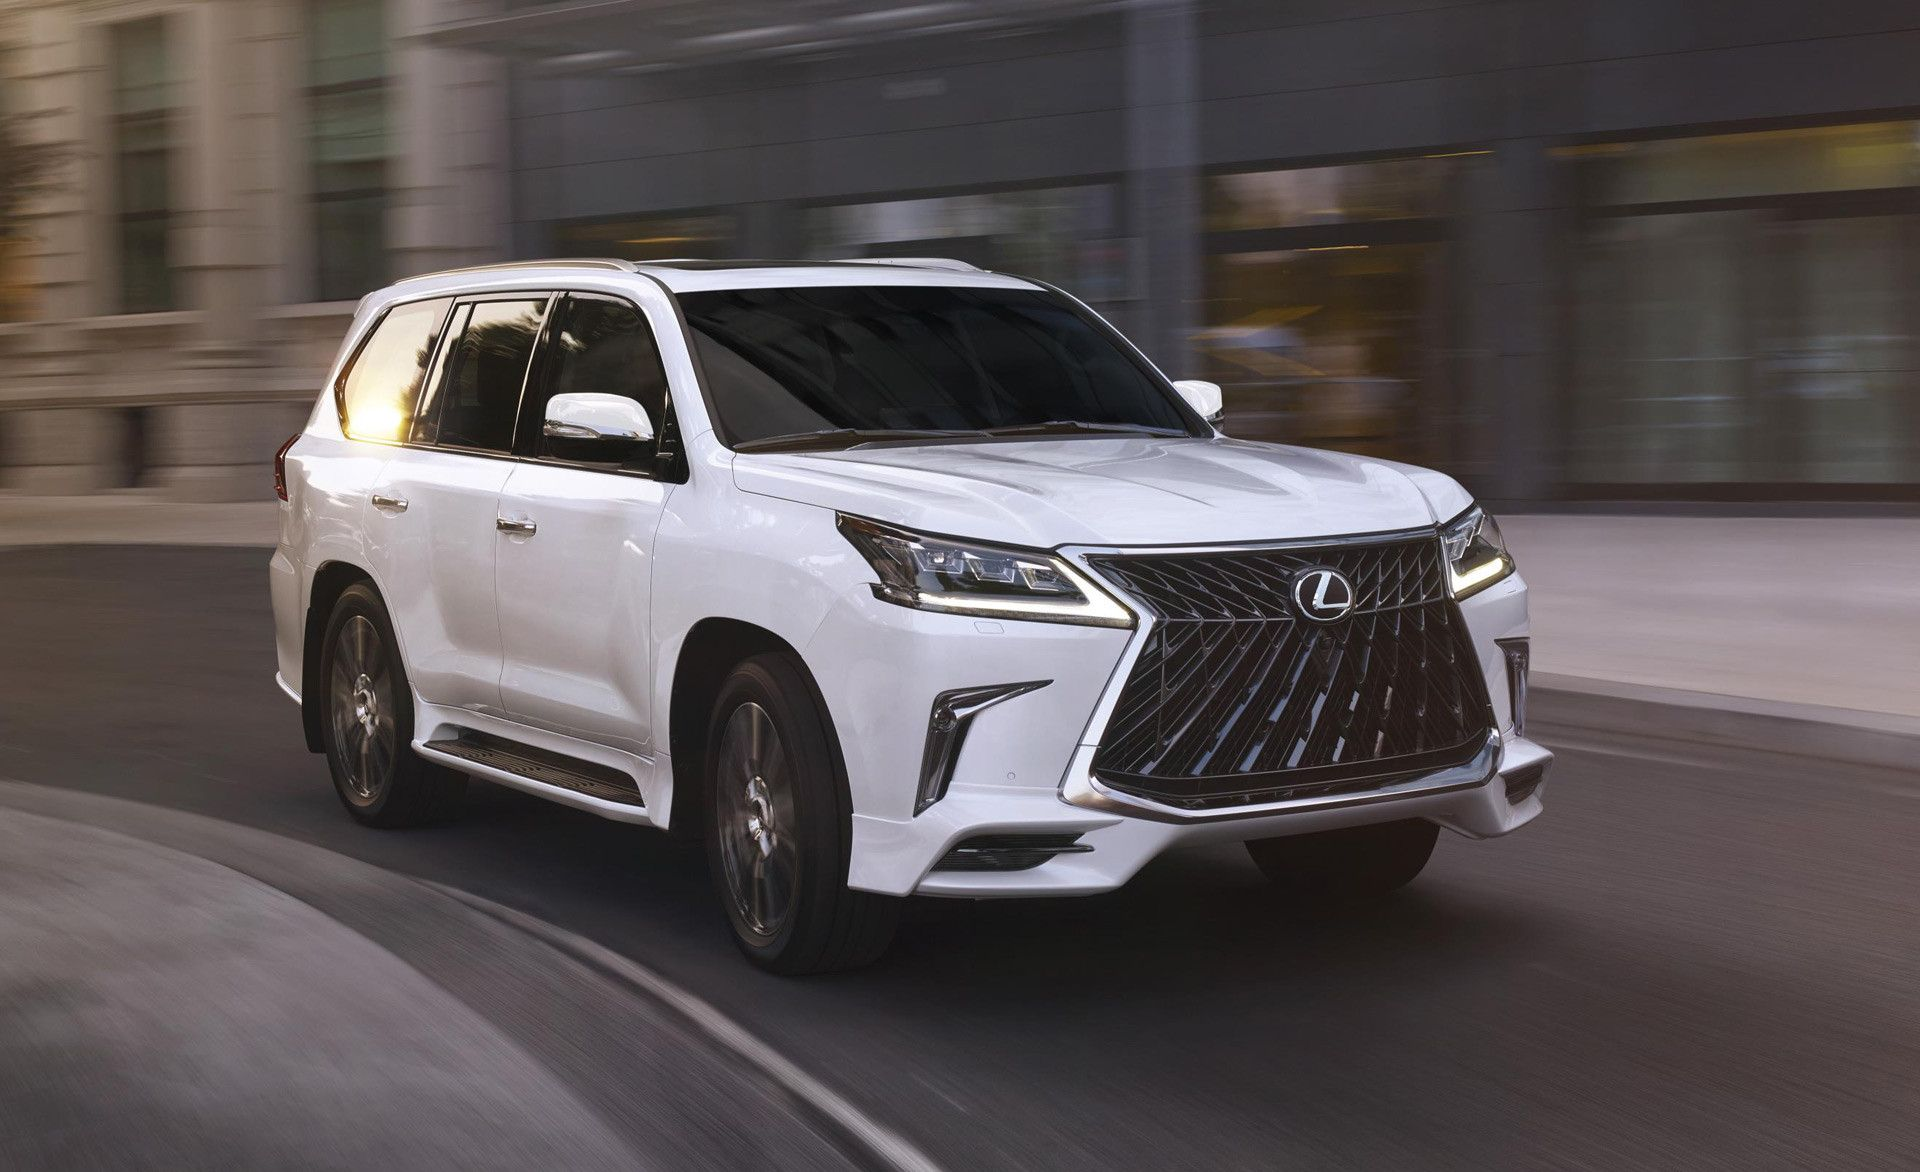 Lexus Deals 2020 Price In 2020 Lexus Gx Lexus Lx570 Lexus Gx 460